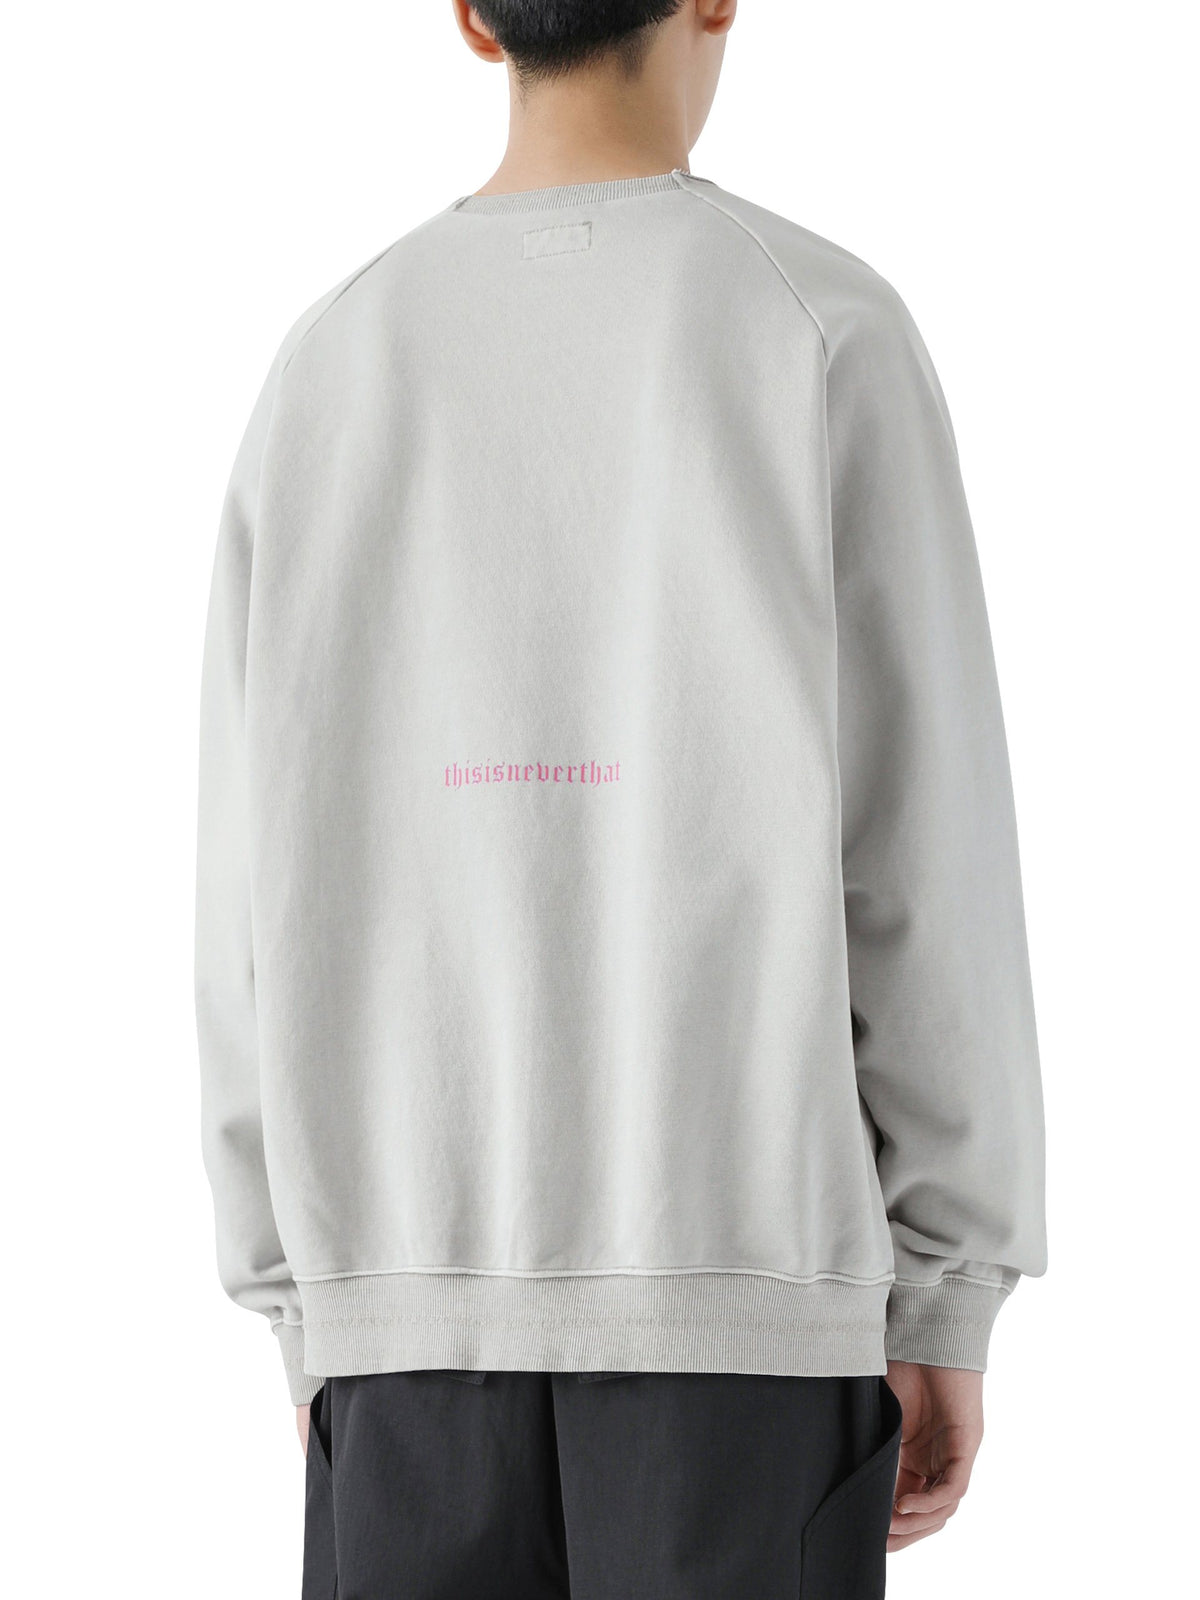 Old Car Crewneck Sweatshirts